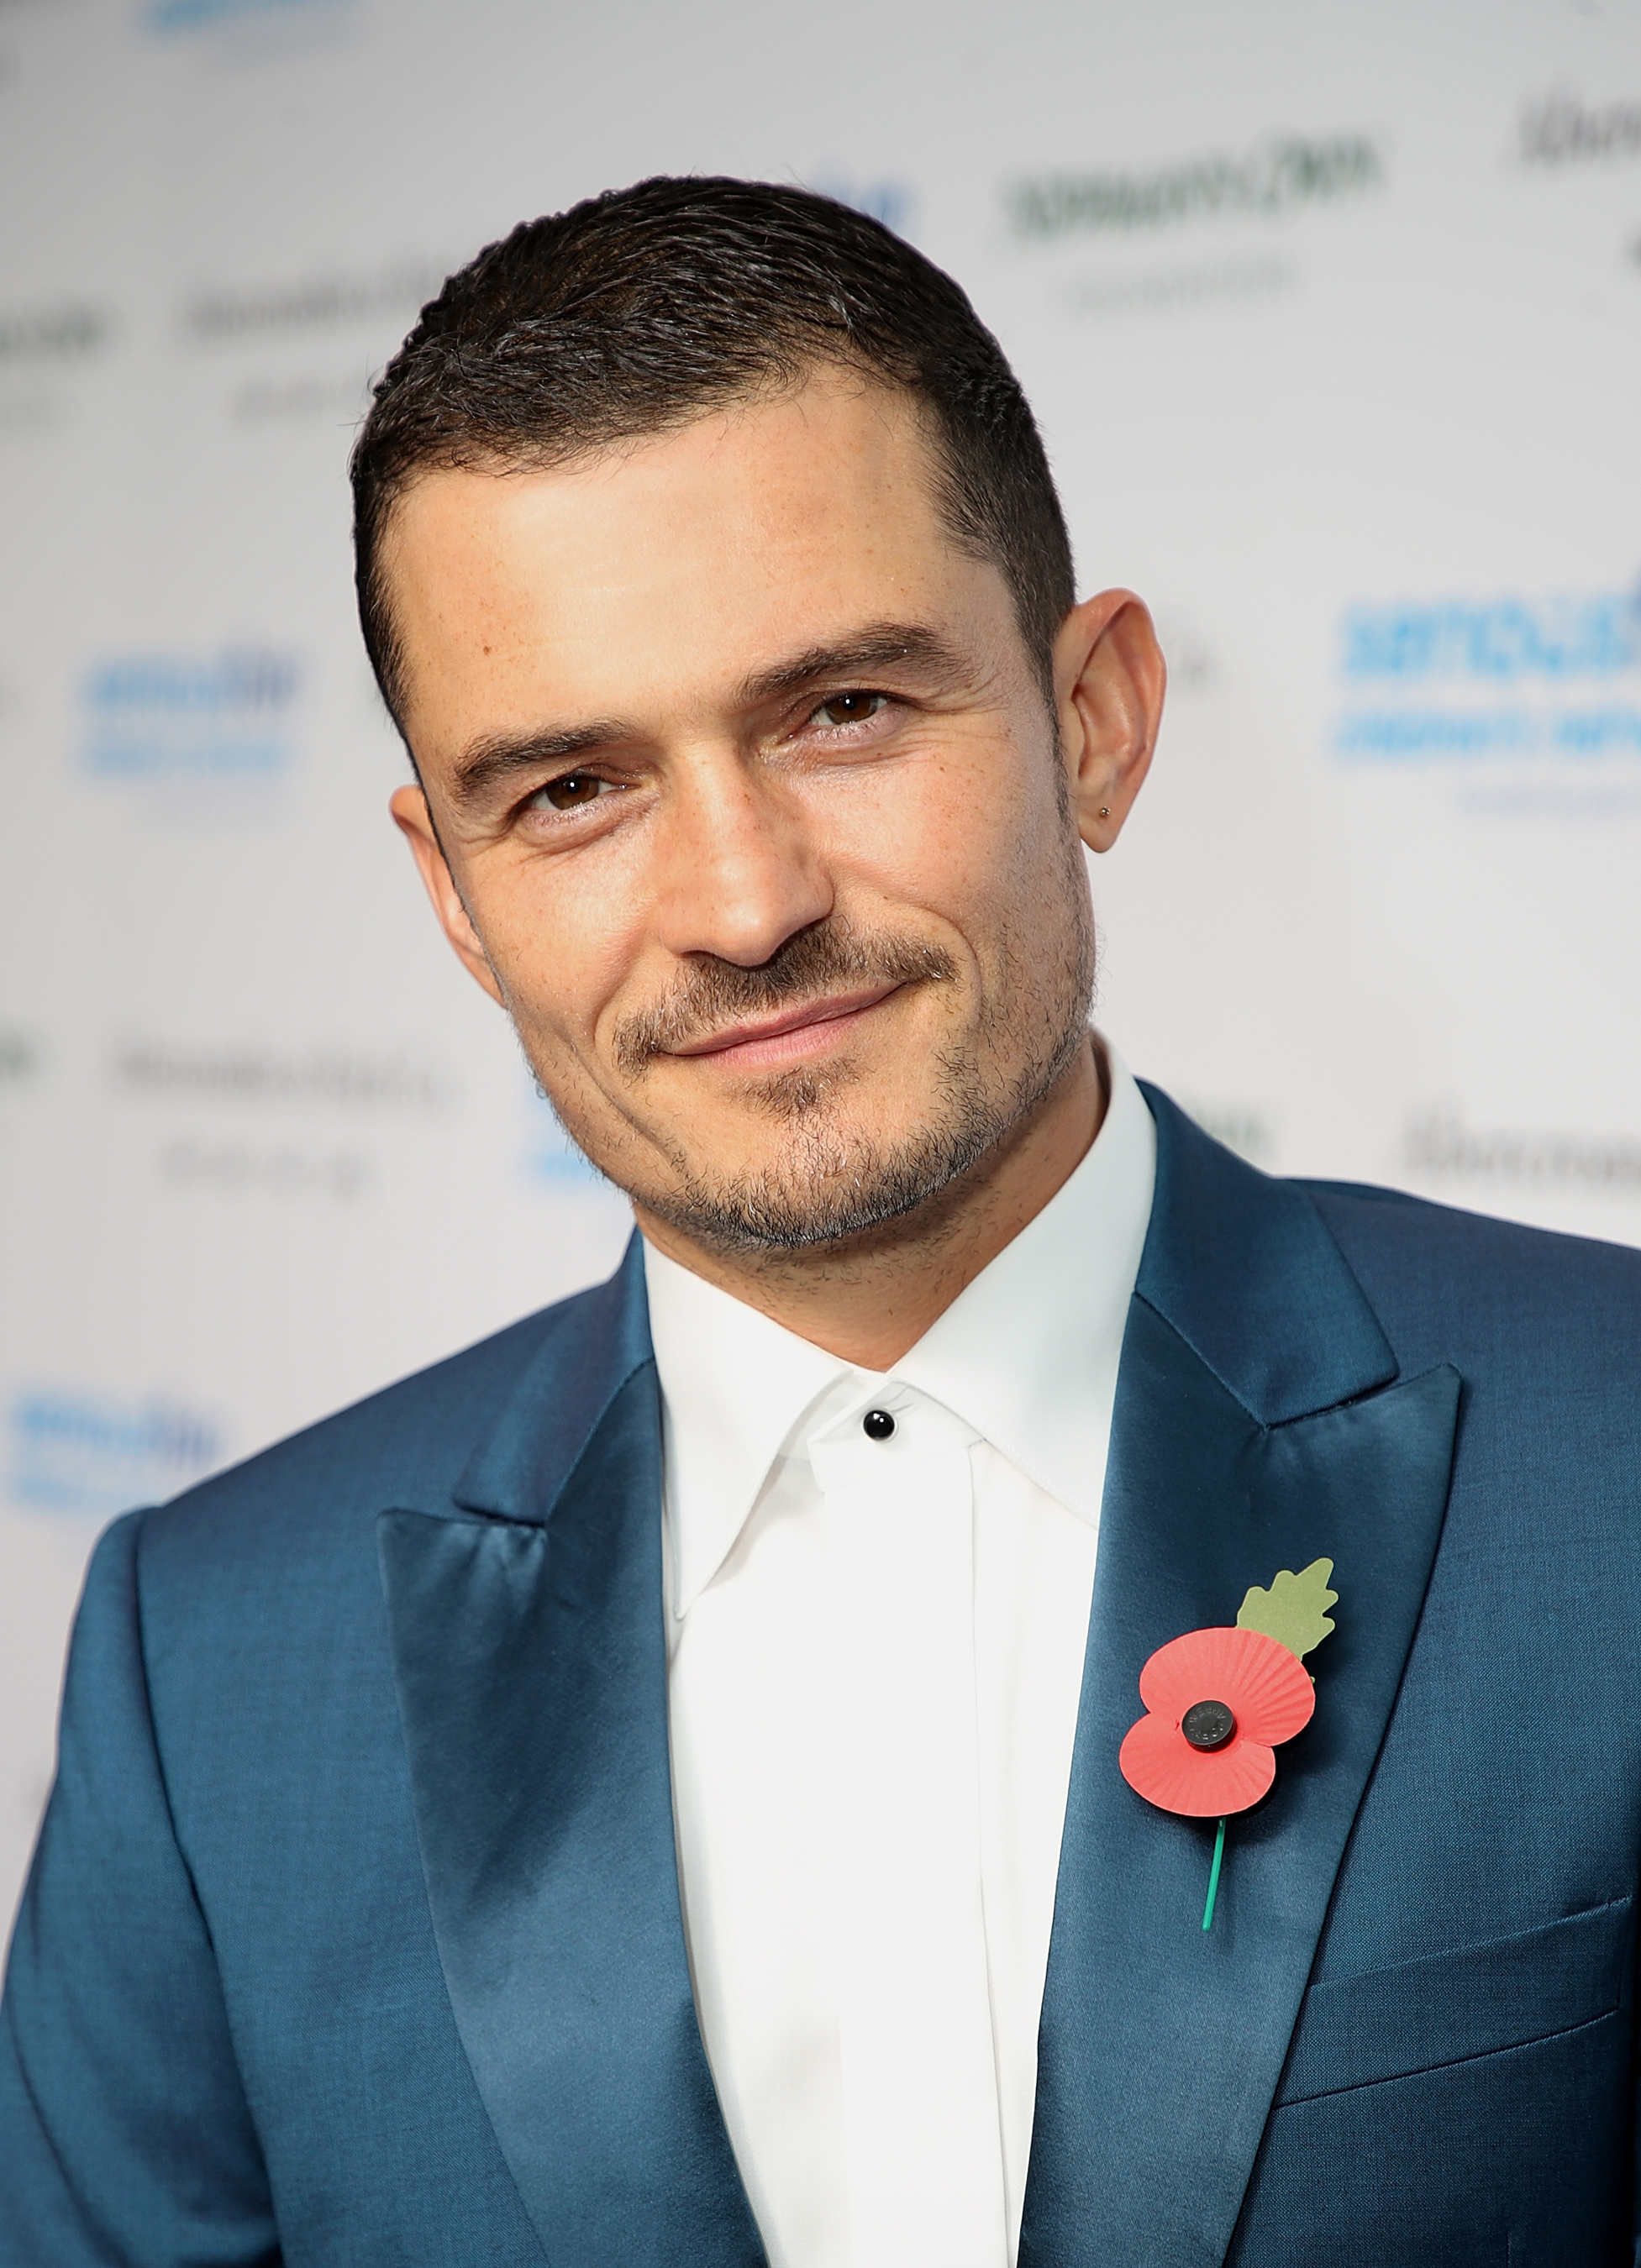 LONDON, ENGLAND - NOVEMBER 06:  Orlando Bloom attends the SeriousFun London Gala 2018 at The Roundhouse on November 6, 2018 in London, England.  (Photo by Mike Marsland/Mike Marsland/Getty Images for SeriousFun) *** Local Caption *** Orlando Bloom